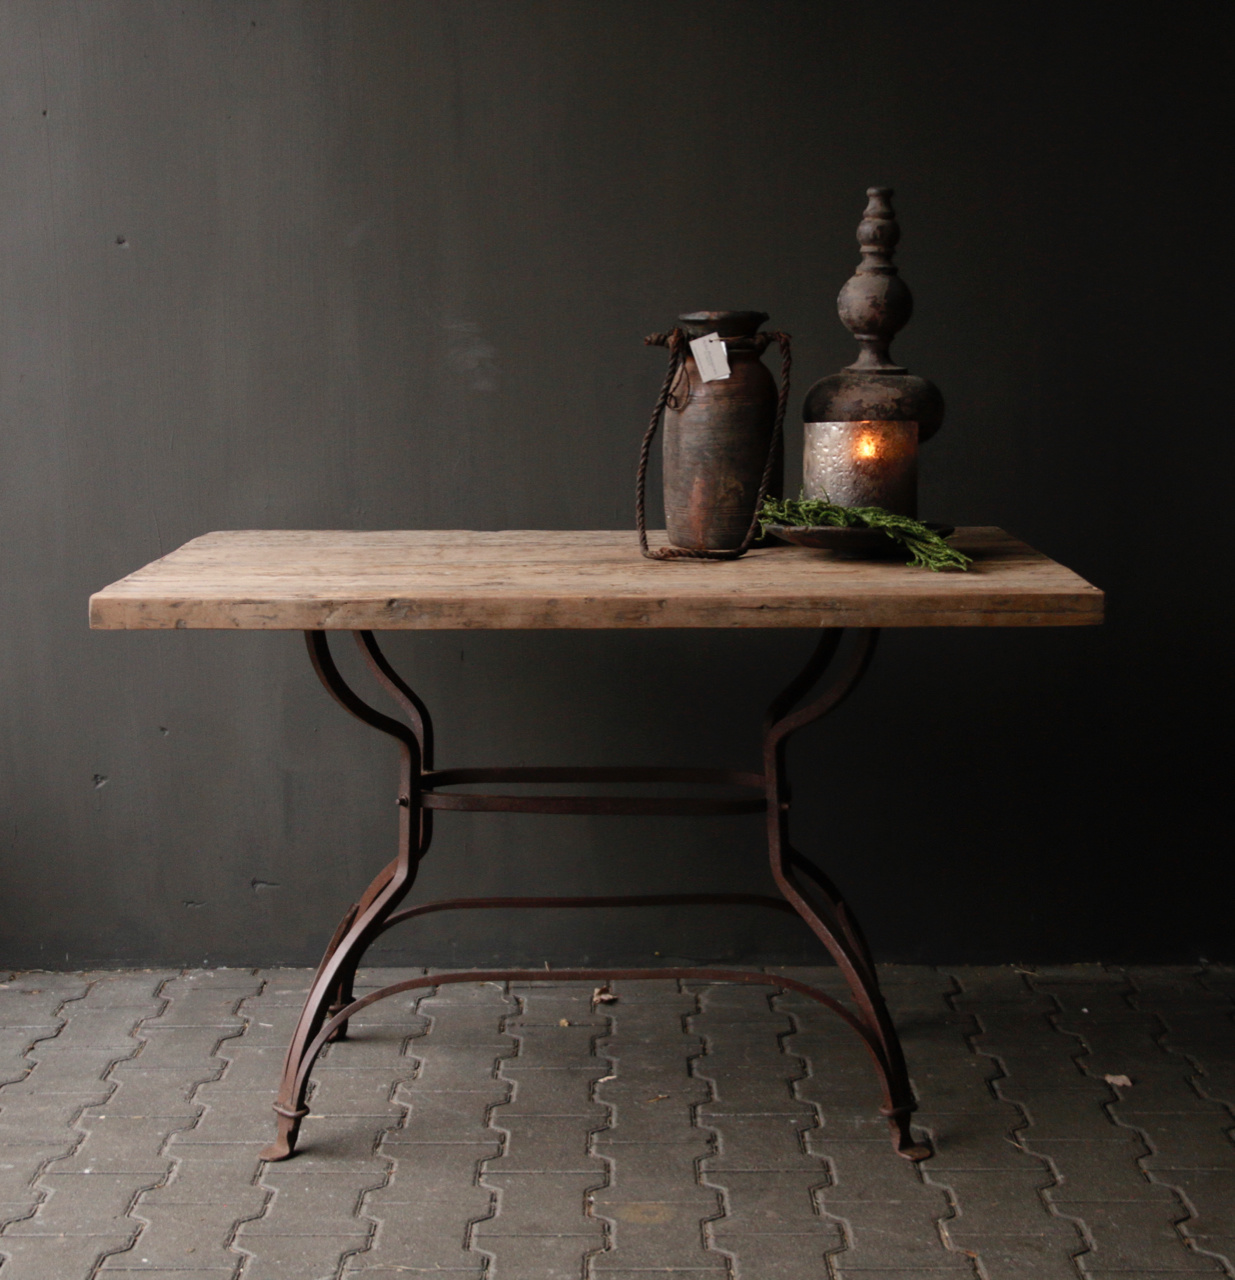 Loose old wooden table top-1